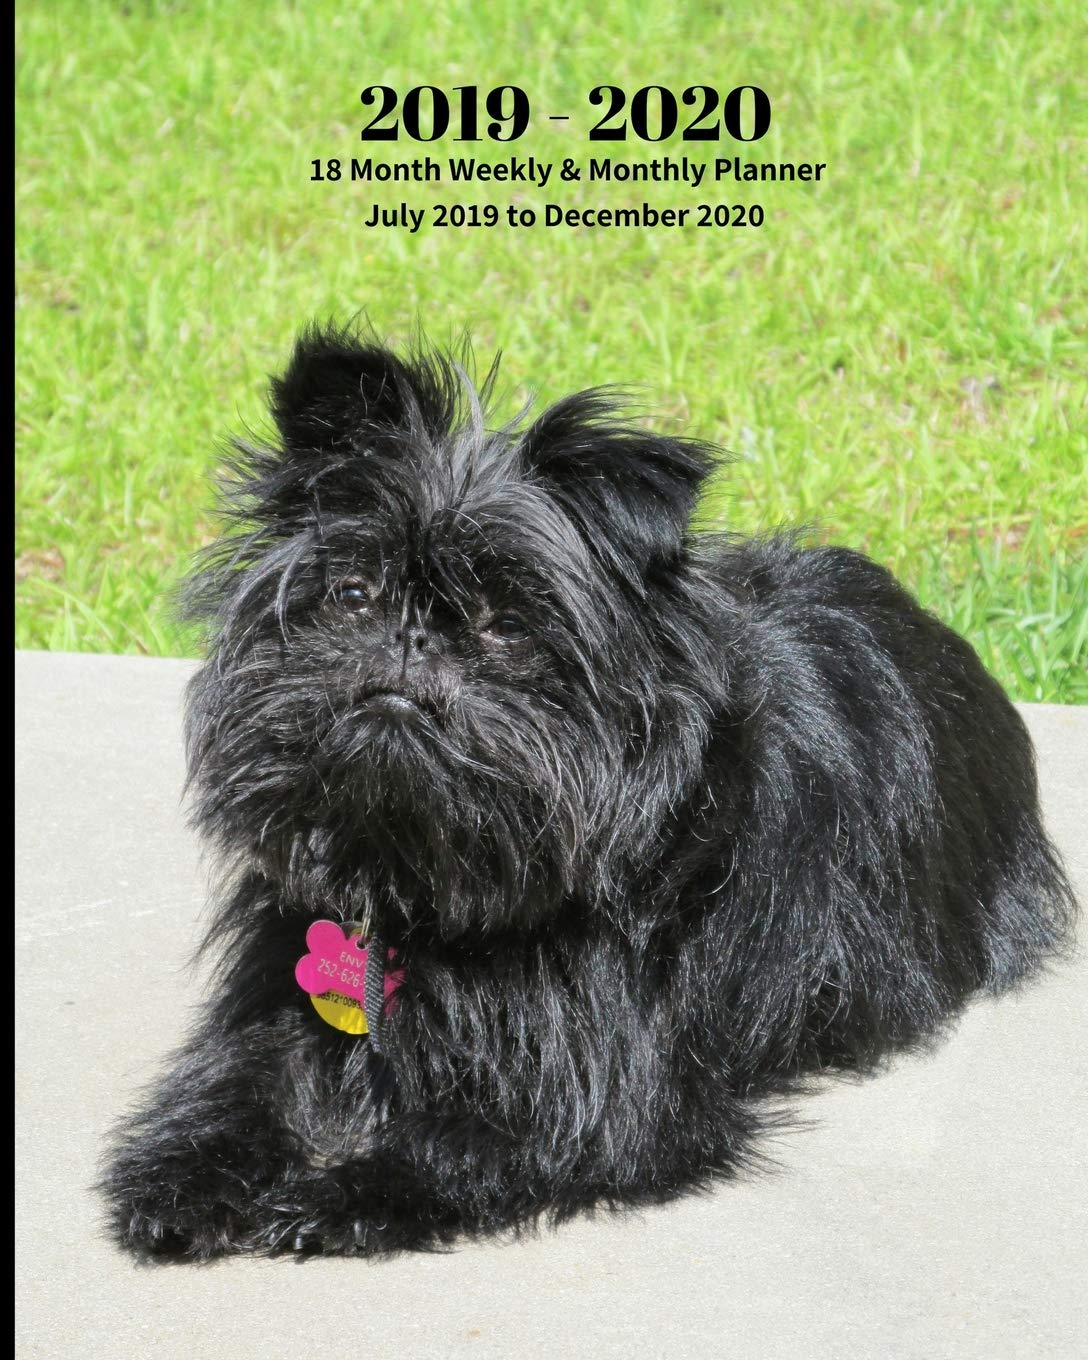 2019 – 2020 | 18 Month Weekly & Monthly Planner July 2019 to December 2020: Affenpinscher Dog Pets Canine Vol 12 Monthly…